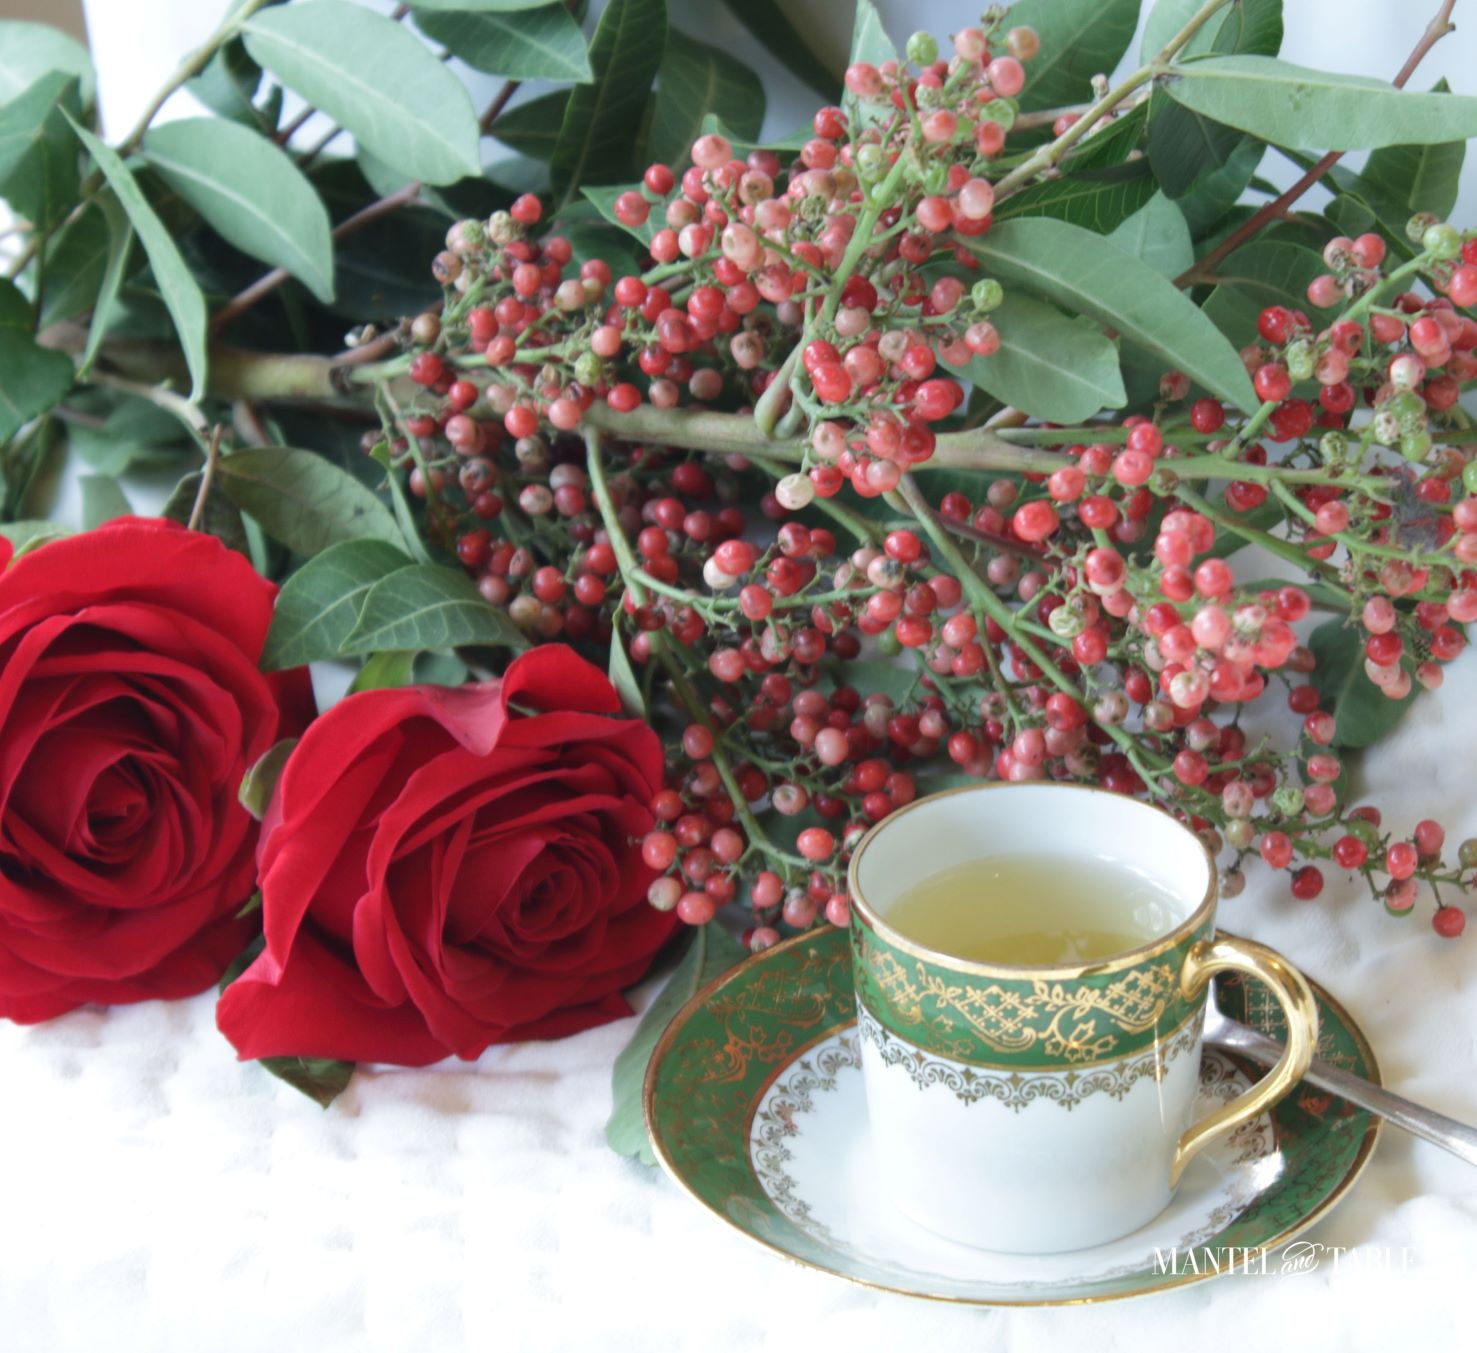 Green and gold teacup with red roses on quilted white